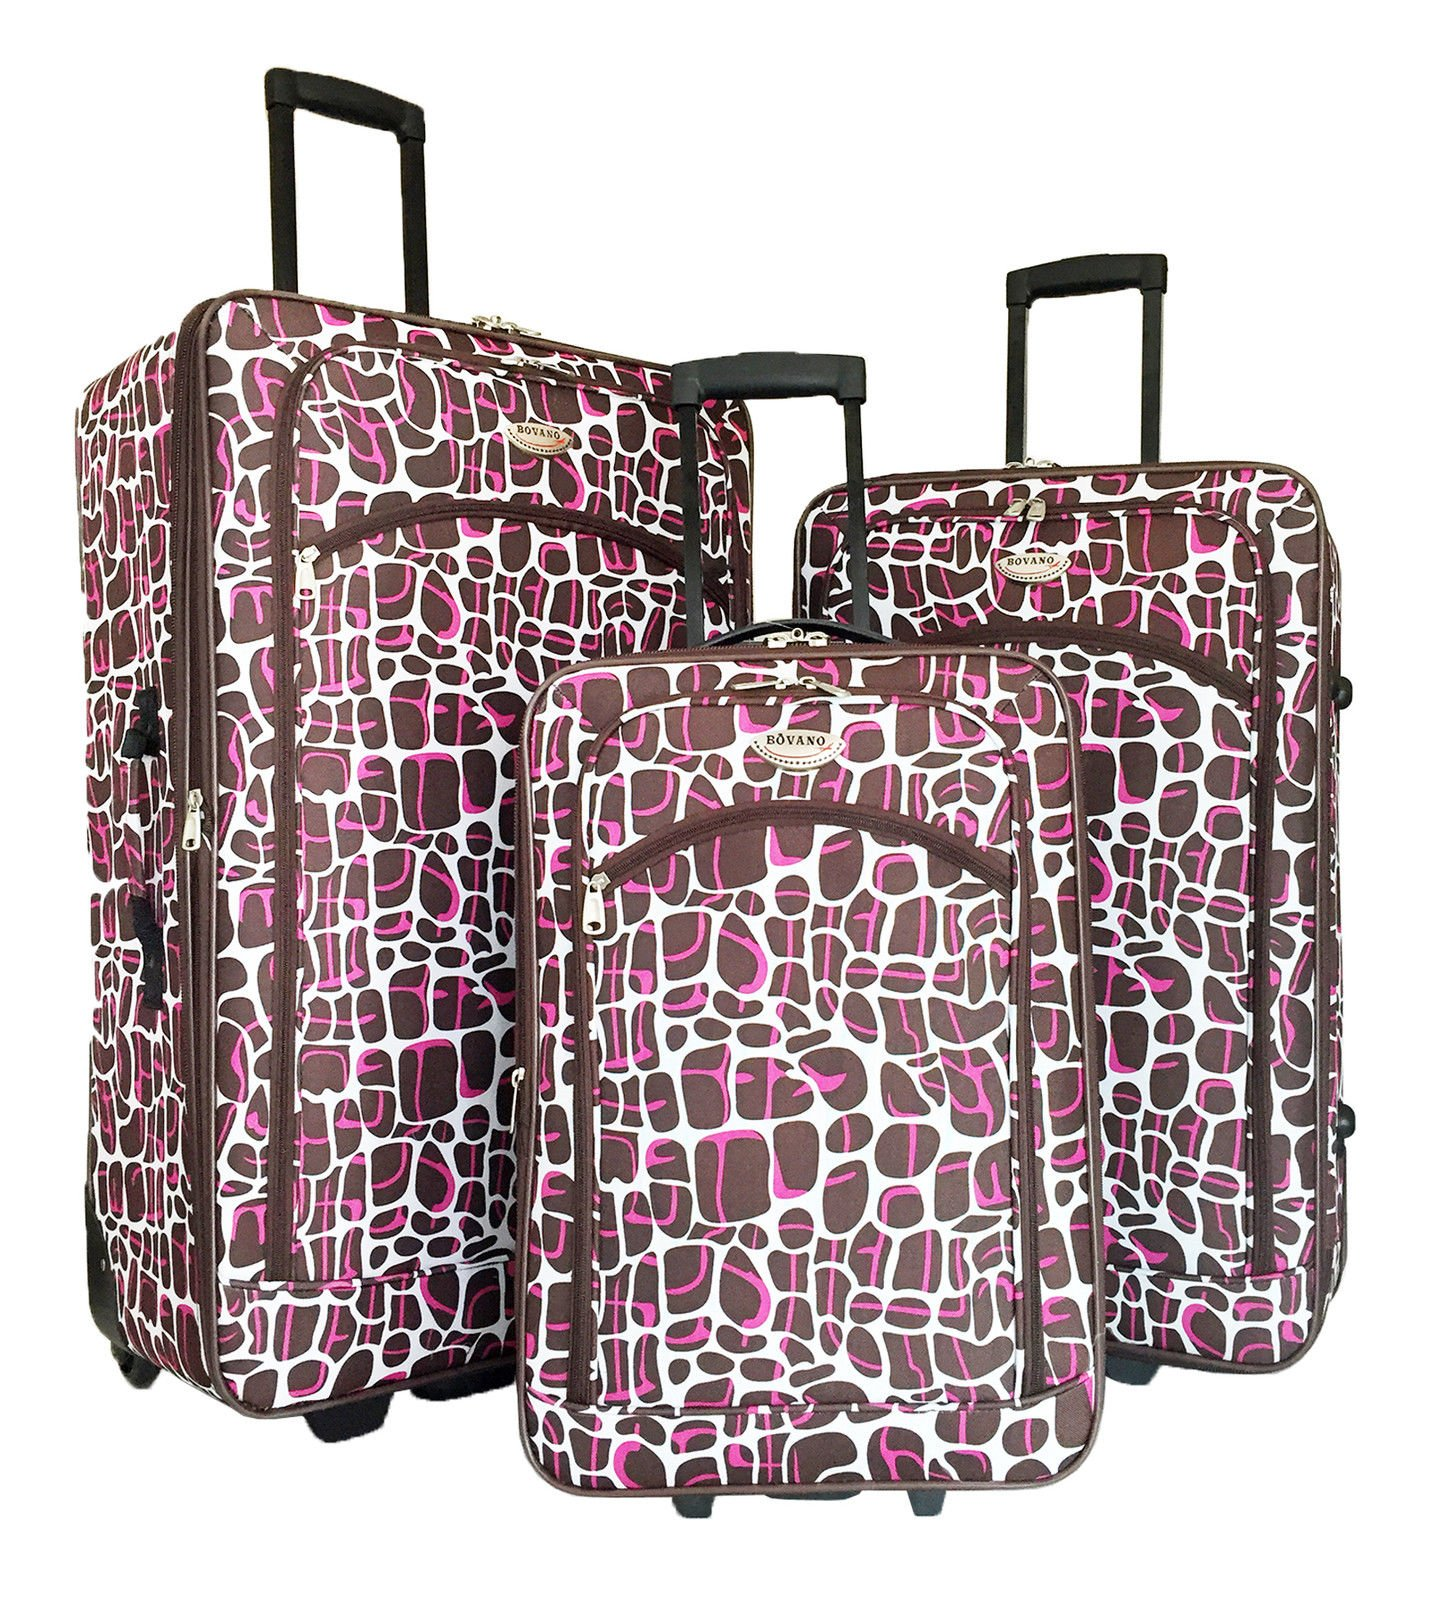 3pc Luggage Set Travel Bag Rolling Wheel Carryon Expandable Upright Giraffe Pink by Trendy Flyer